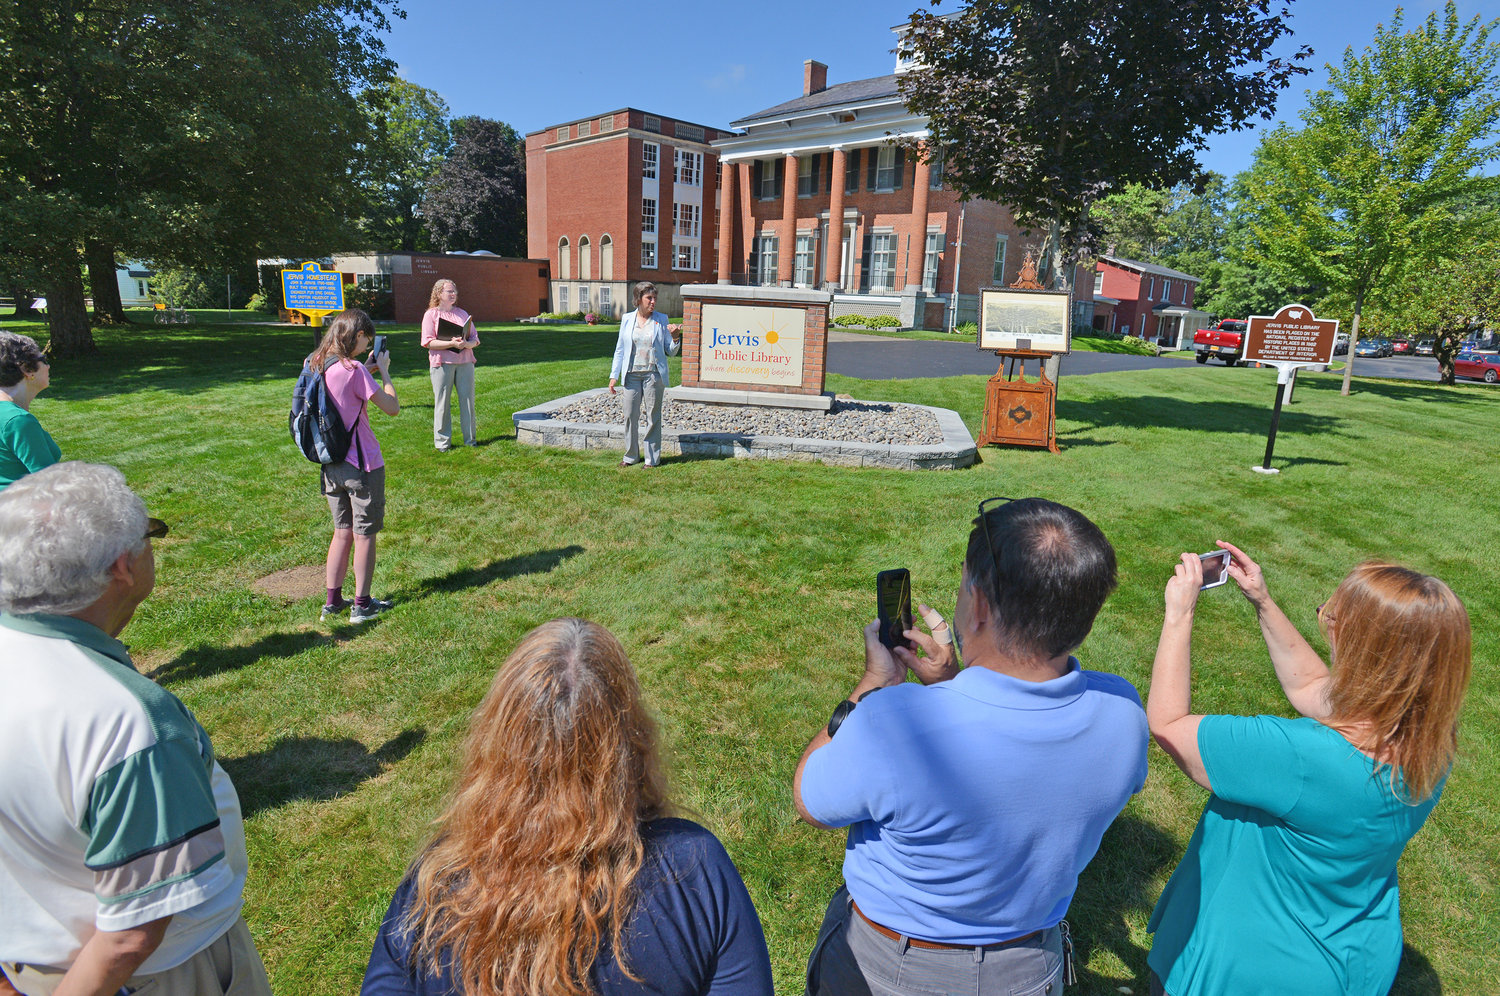 CITY SIGNIFICANCE — Mayor Jacqueline M. Izzo talks about the new historical markers at the Jervis Public Library and their importance to the city during a ceremony on the library grounds Tuesday.